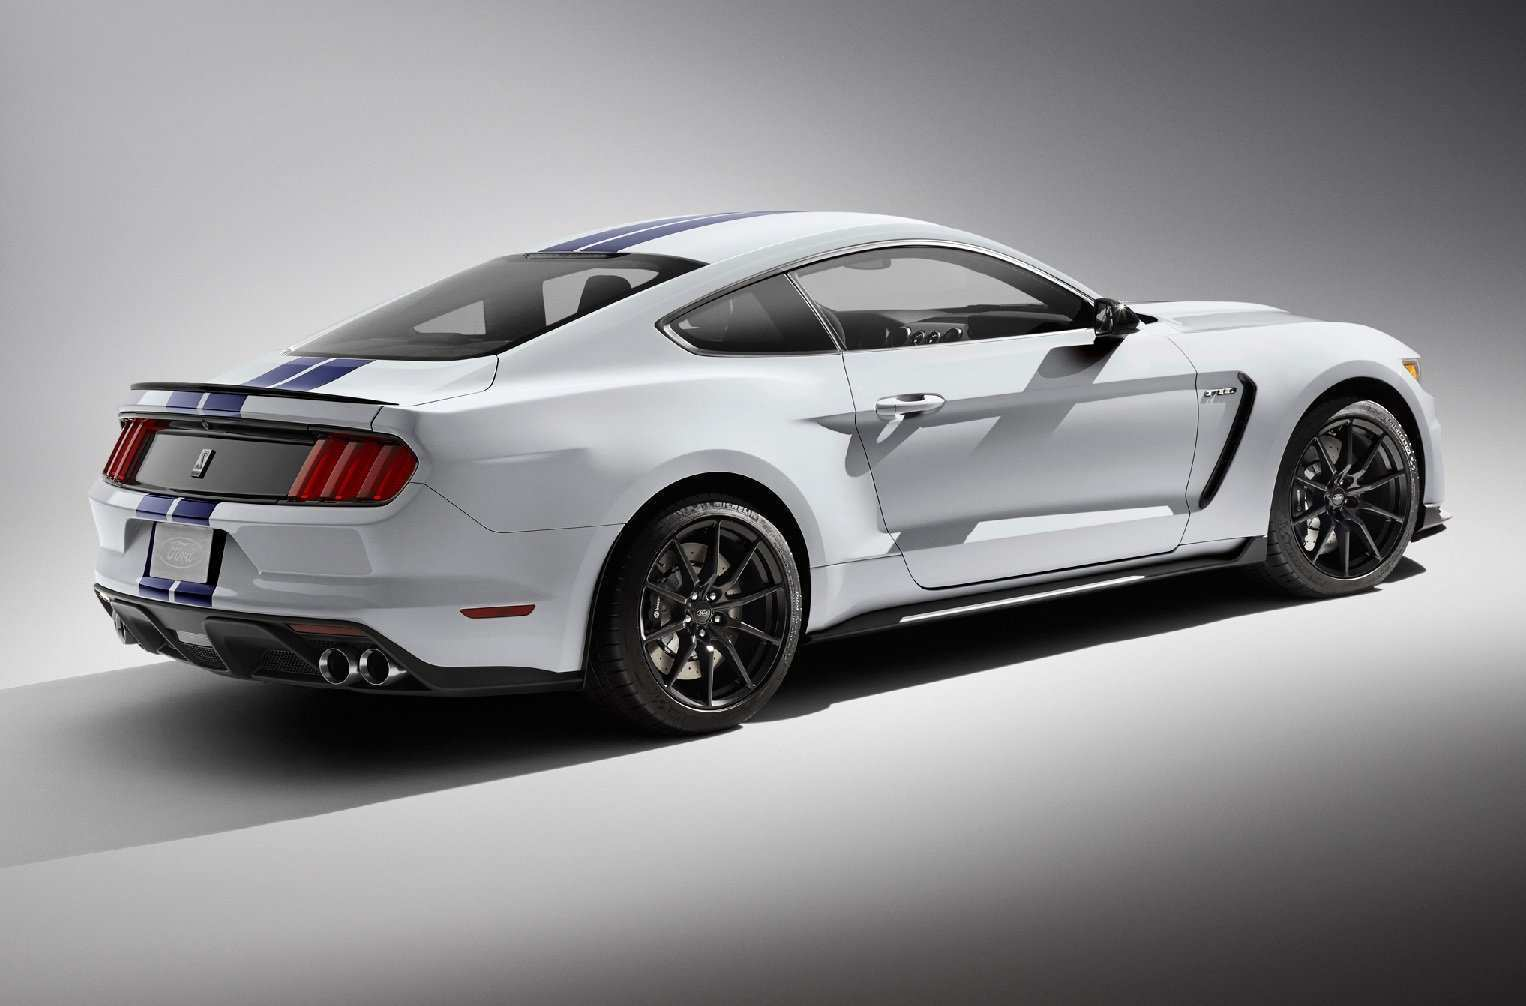 77 The Best 2020 Ford Mustang Shelby Gt 350 Photos